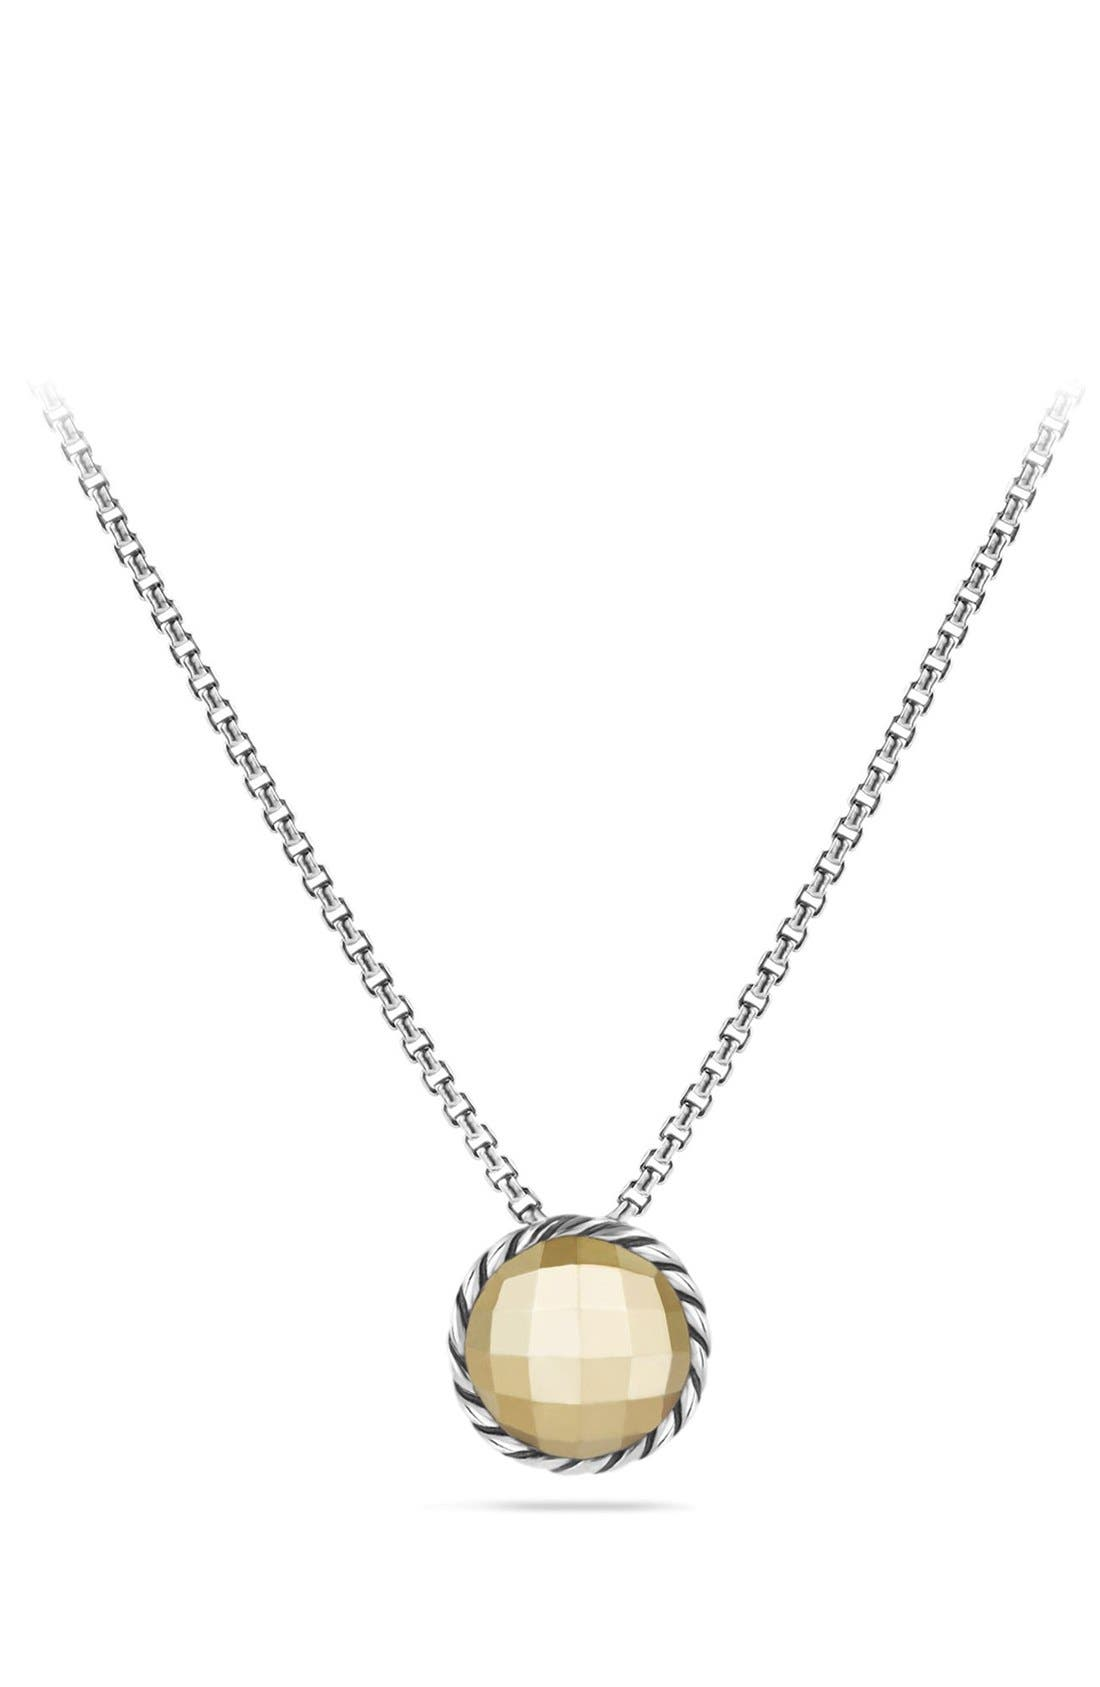 'Châtelaine' Necklace with Gold Dome and 18K Gold,                             Main thumbnail 1, color,                             Gold Dome